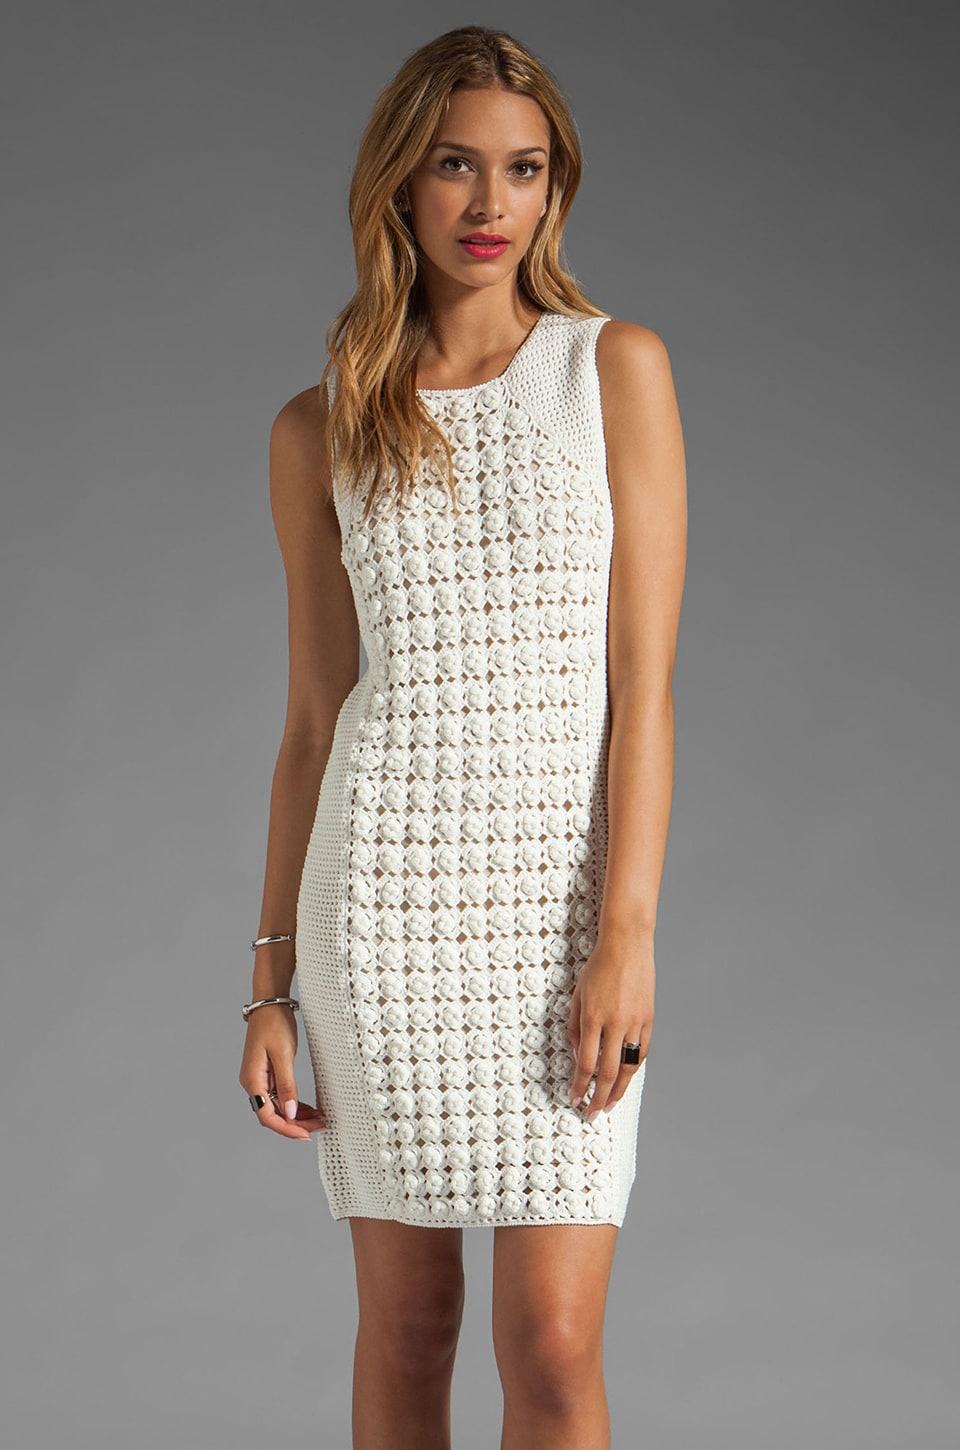 Diane von Furstenberg Thalia Dress in Sea Salt